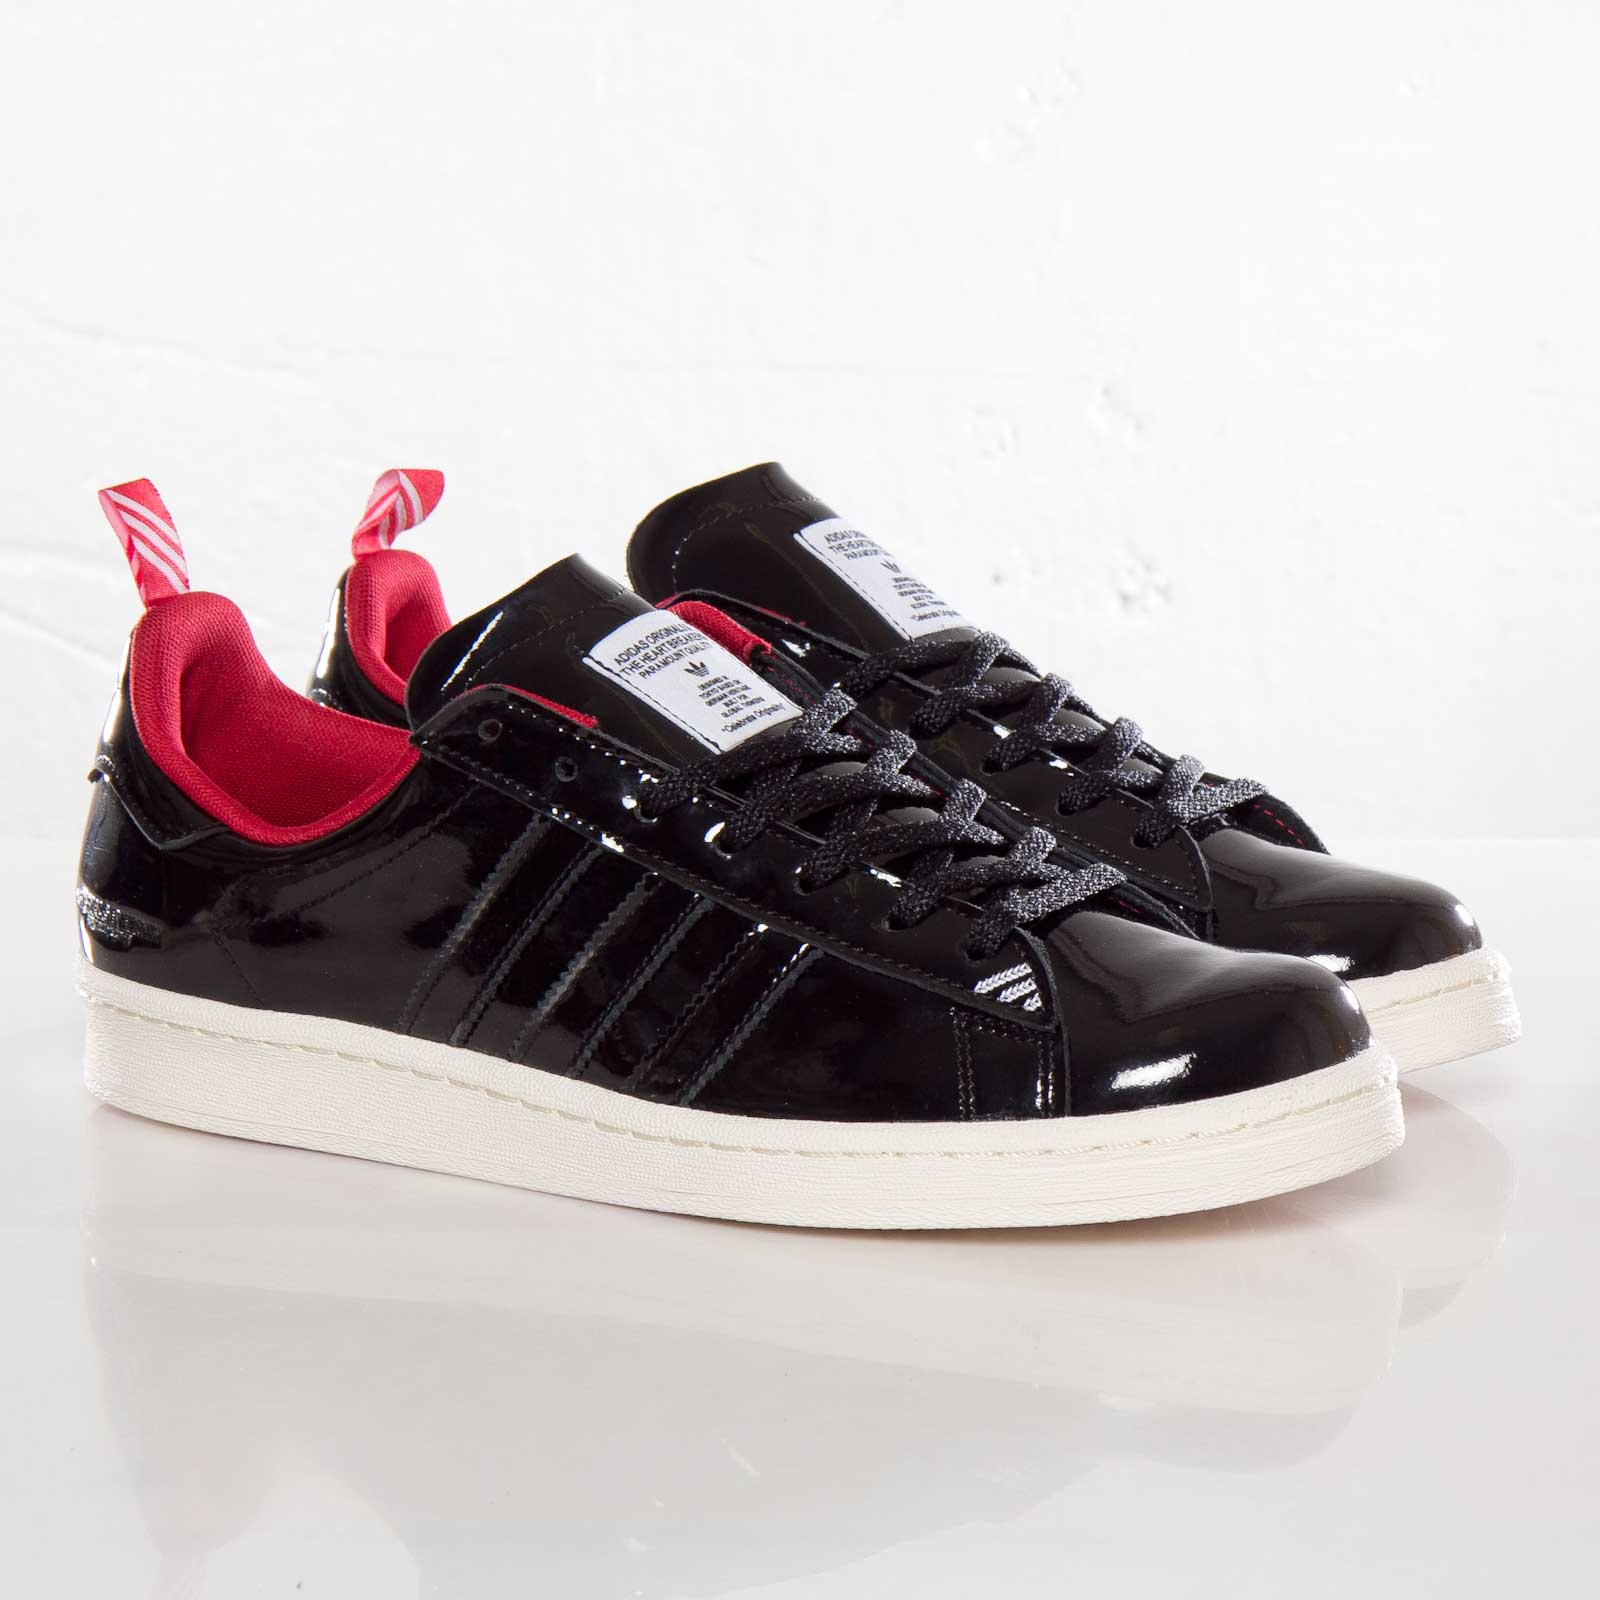 adidas BW Campus 80s - G96744 - Sneakersnstuff  7424f5dce